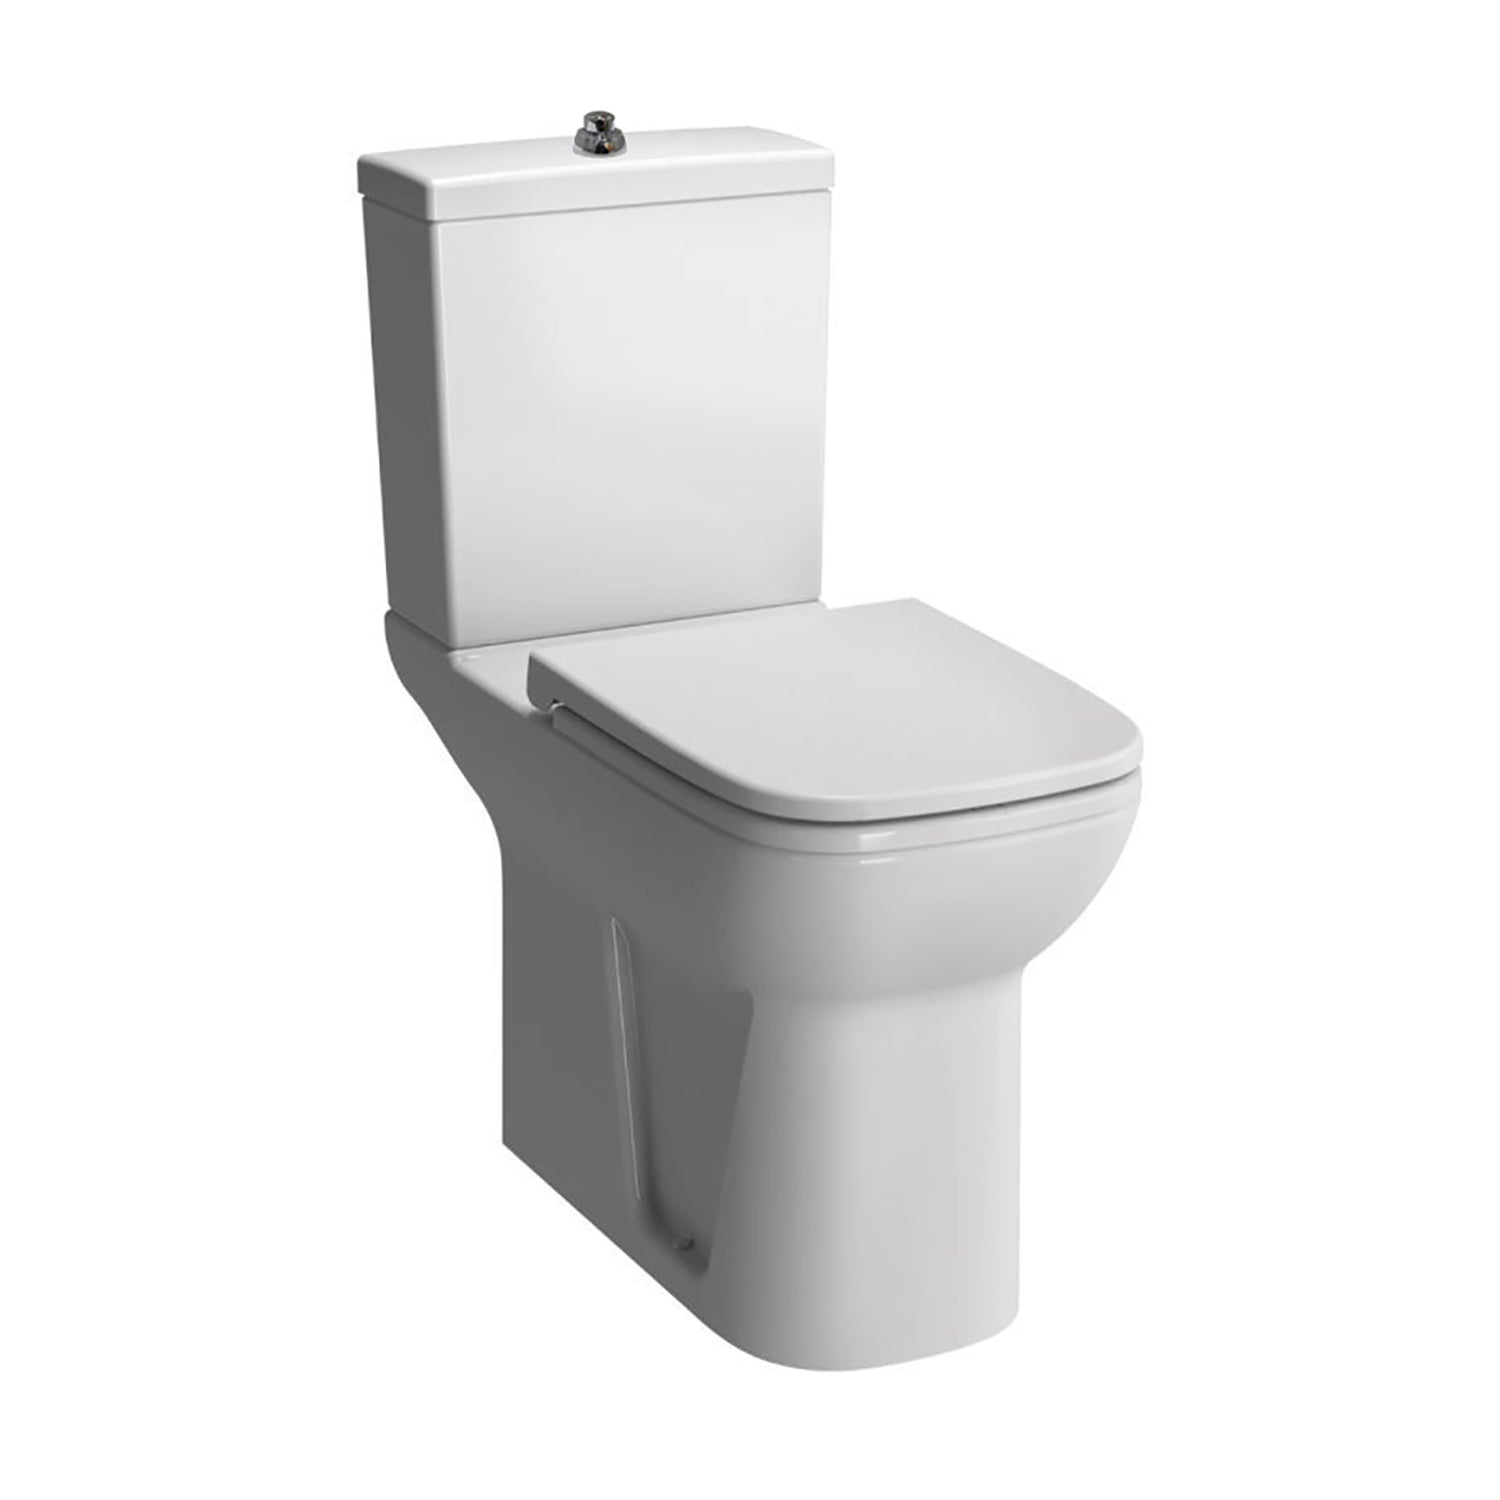 Consilio Comfort Height Close Coupled Toilet with the seat and cover on a white background